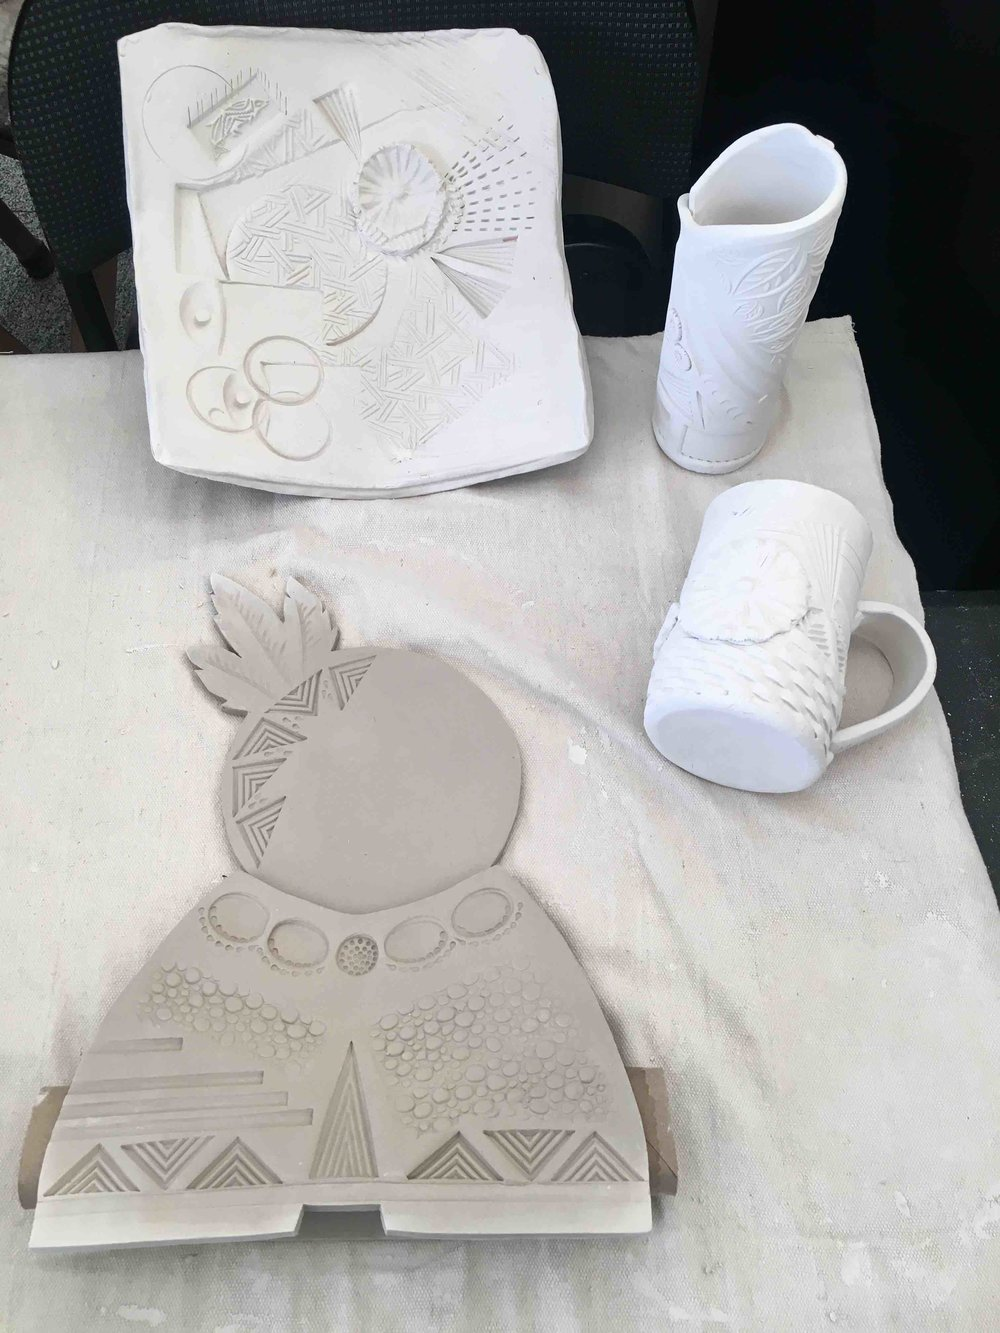 Ceramic tray, vase, cup and stand for a mask